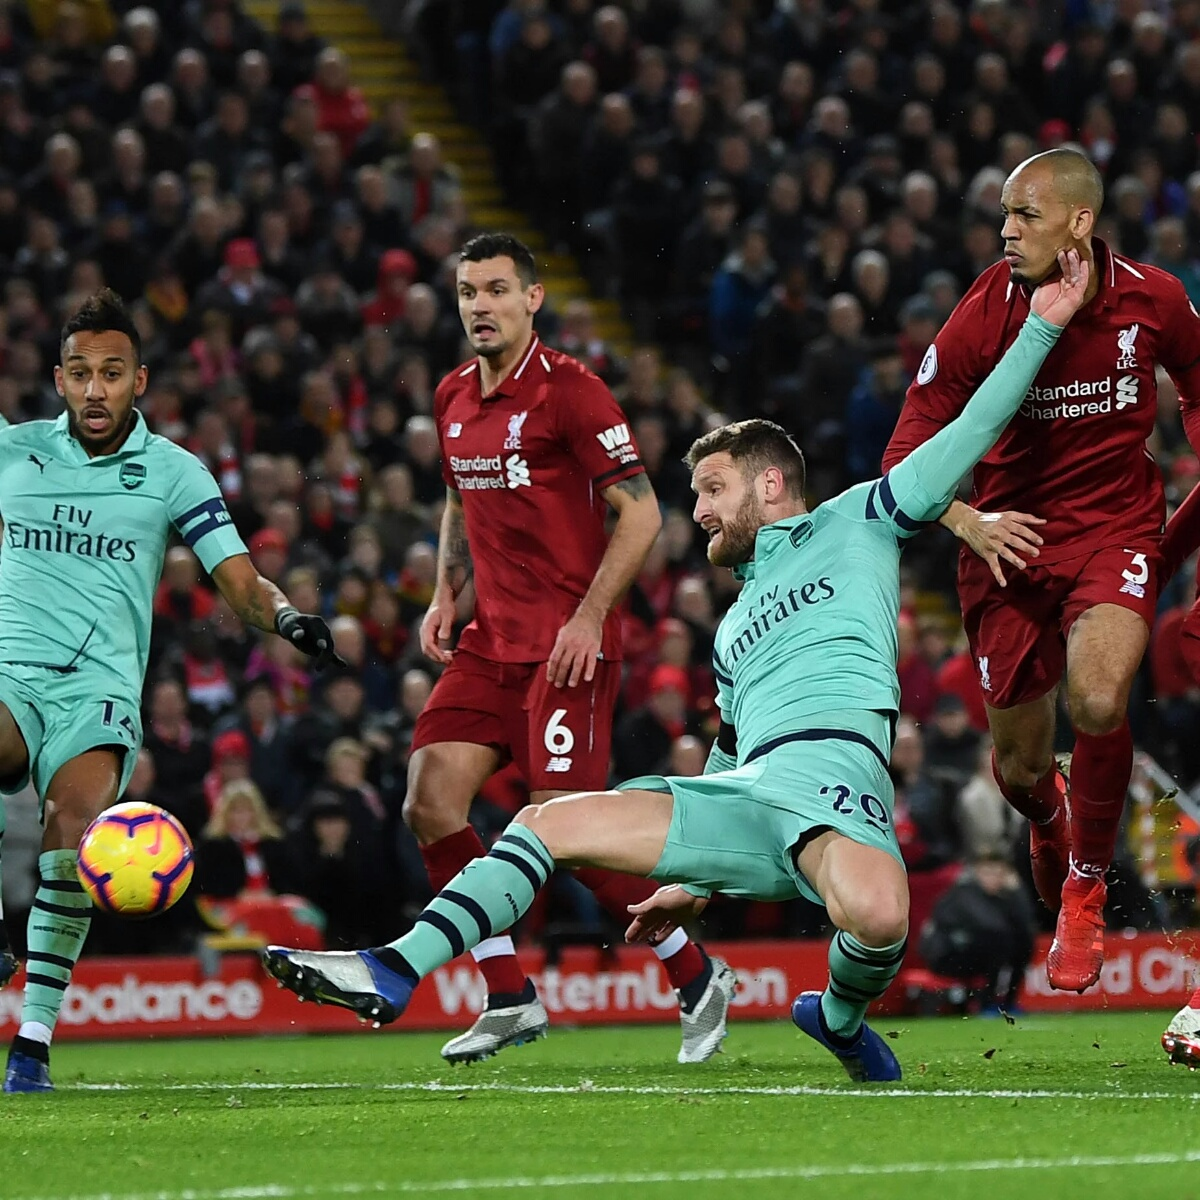 Liverpool vs Arsenal player ratings: Gini Wijnaldum the Reds' Liam Neeson?